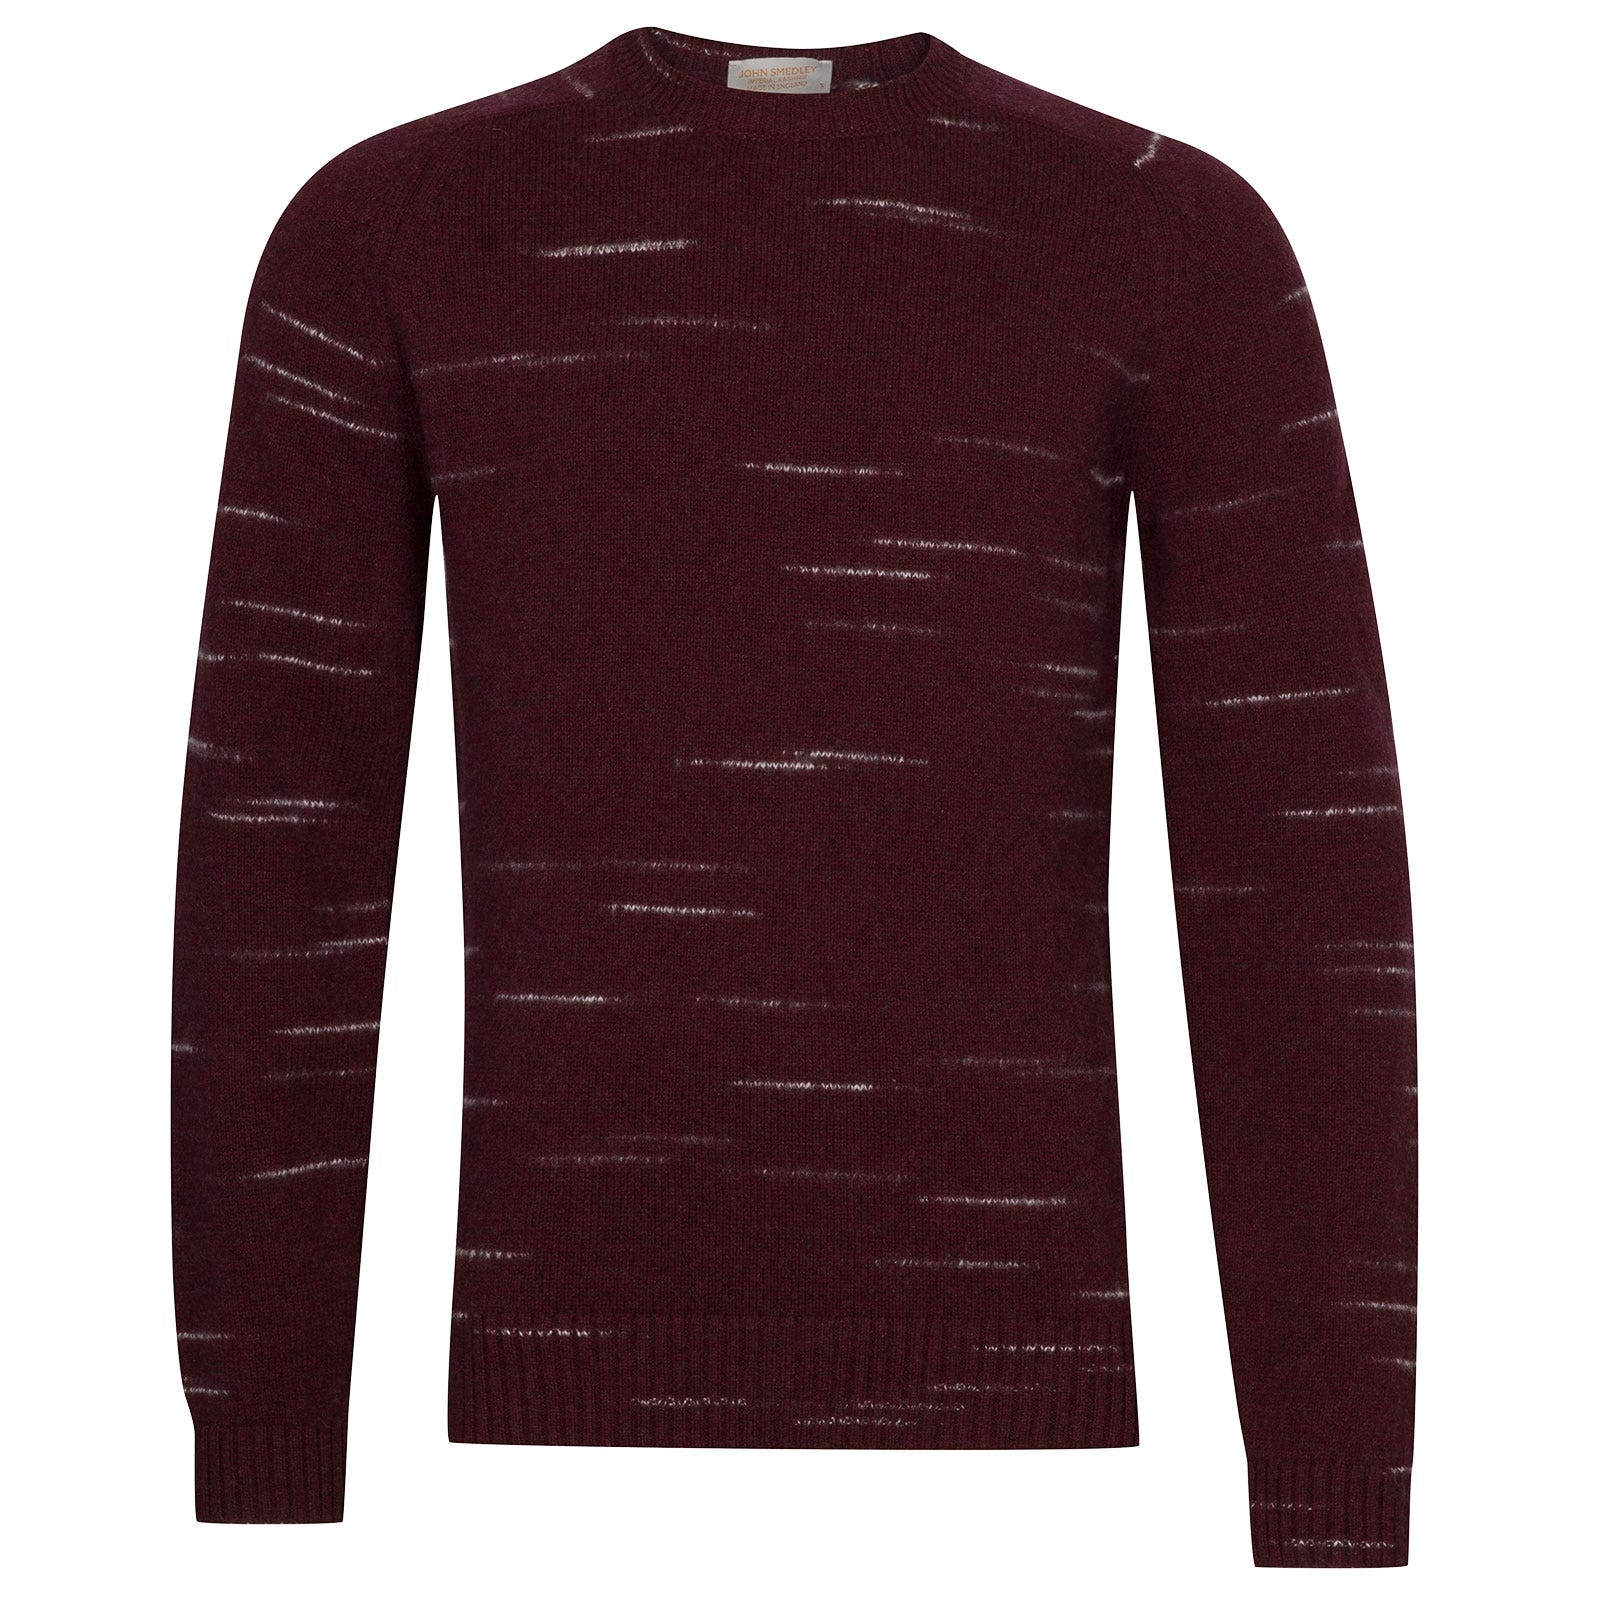 John Smedley Salke Viscose Blend Pullover In Bordeaux-S